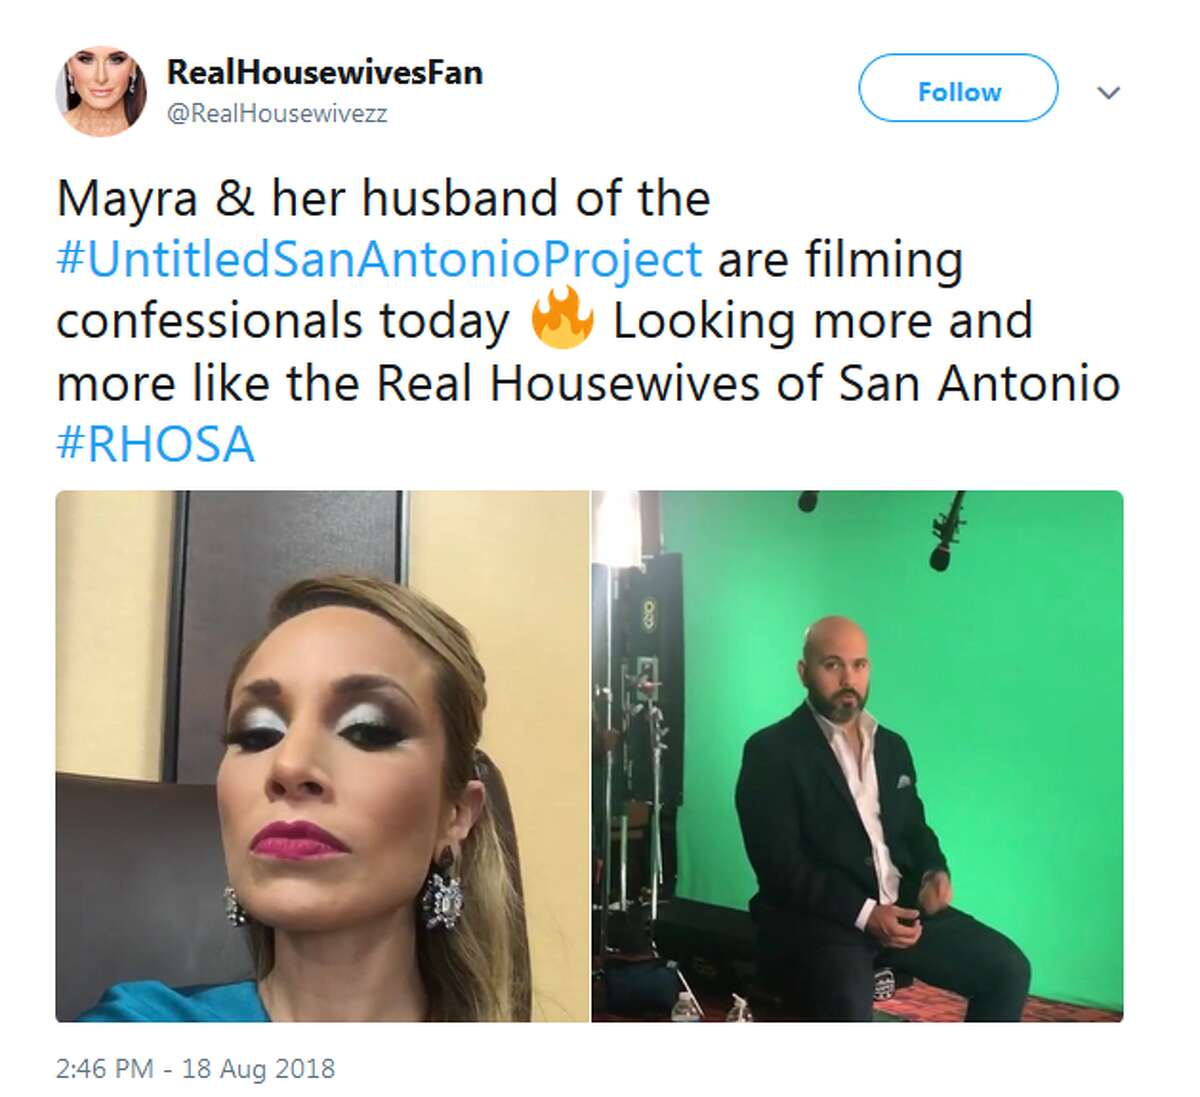 Click ahead to view cast members of 'Texicanas' on social media. @RealHousewivezz: Mayra & her husband of the #UntitledSanAntonioProject are filming confessionals today